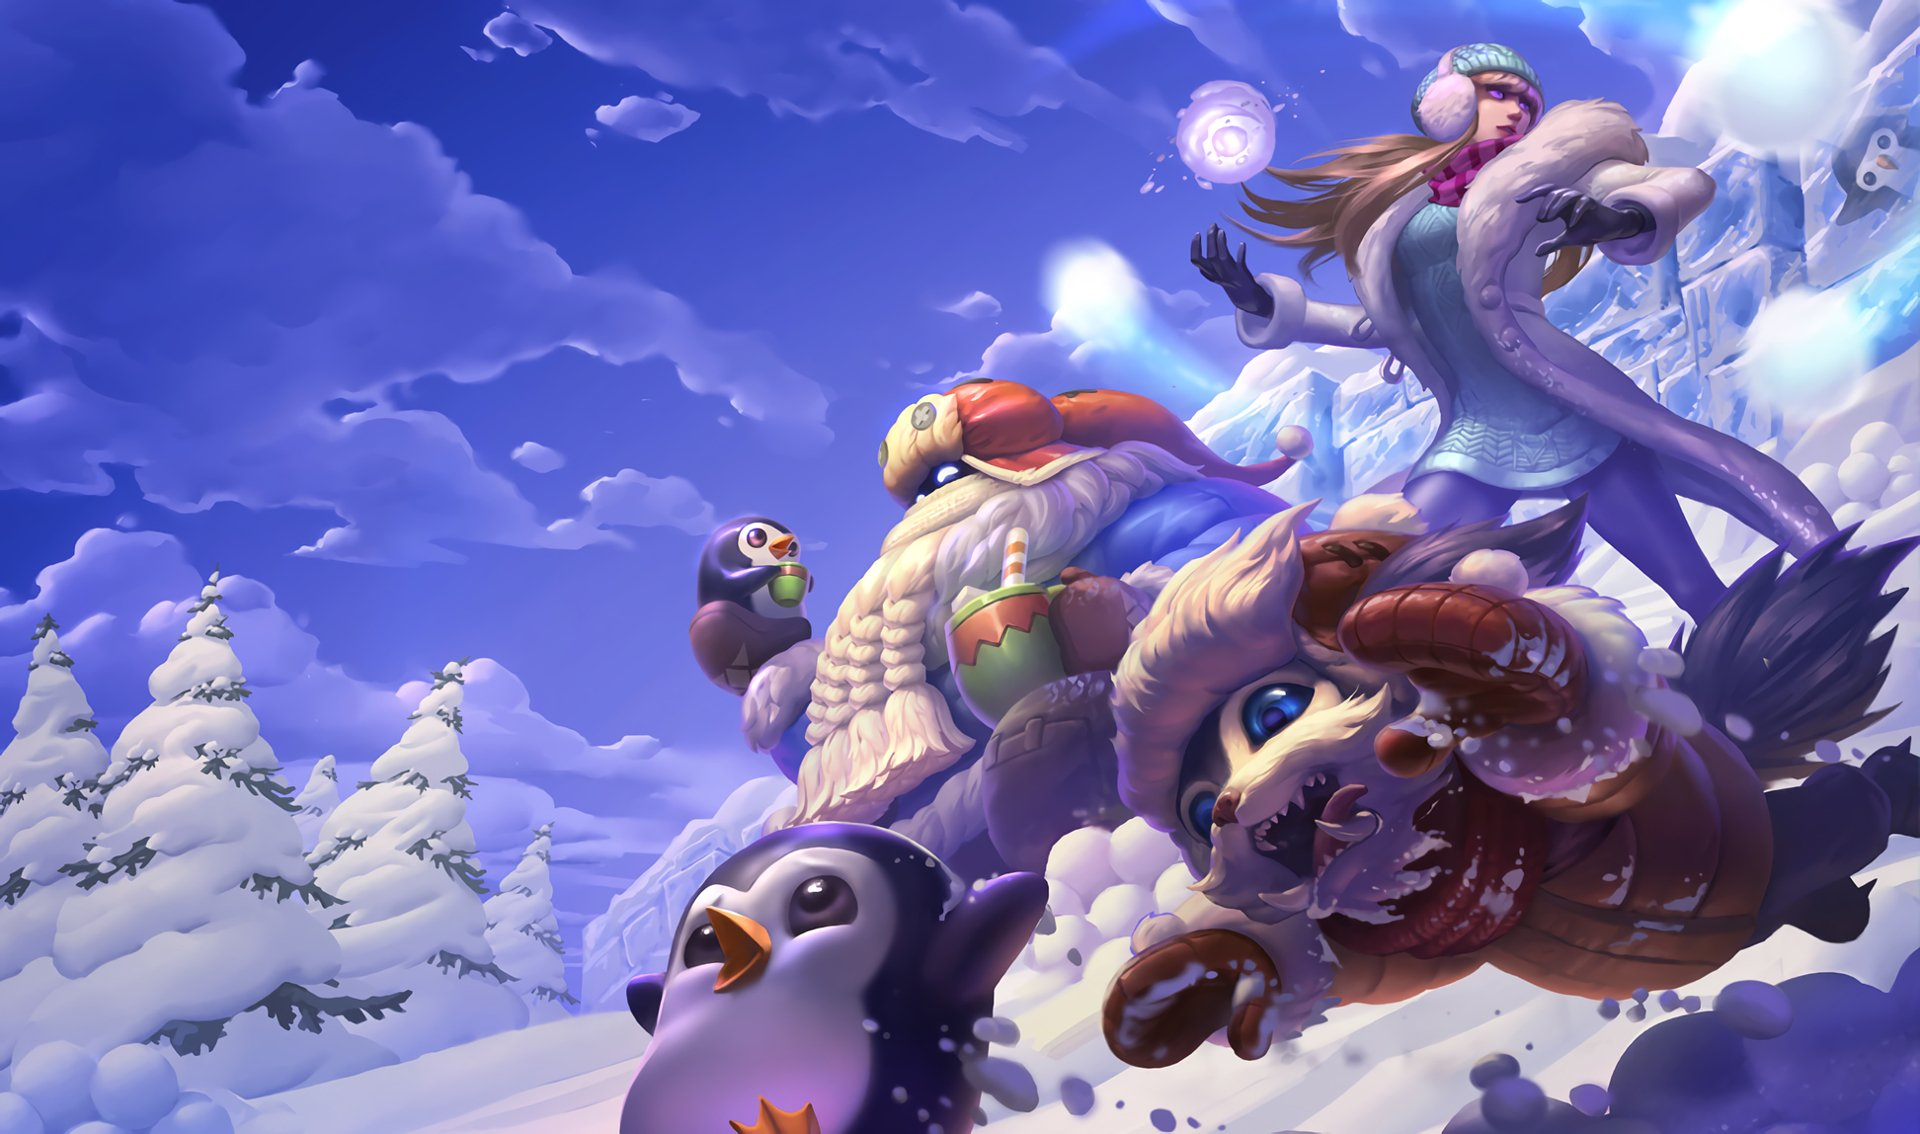 8 Bard (League Of Legends) HD Wallpapers | Backgrounds - Wallpaper